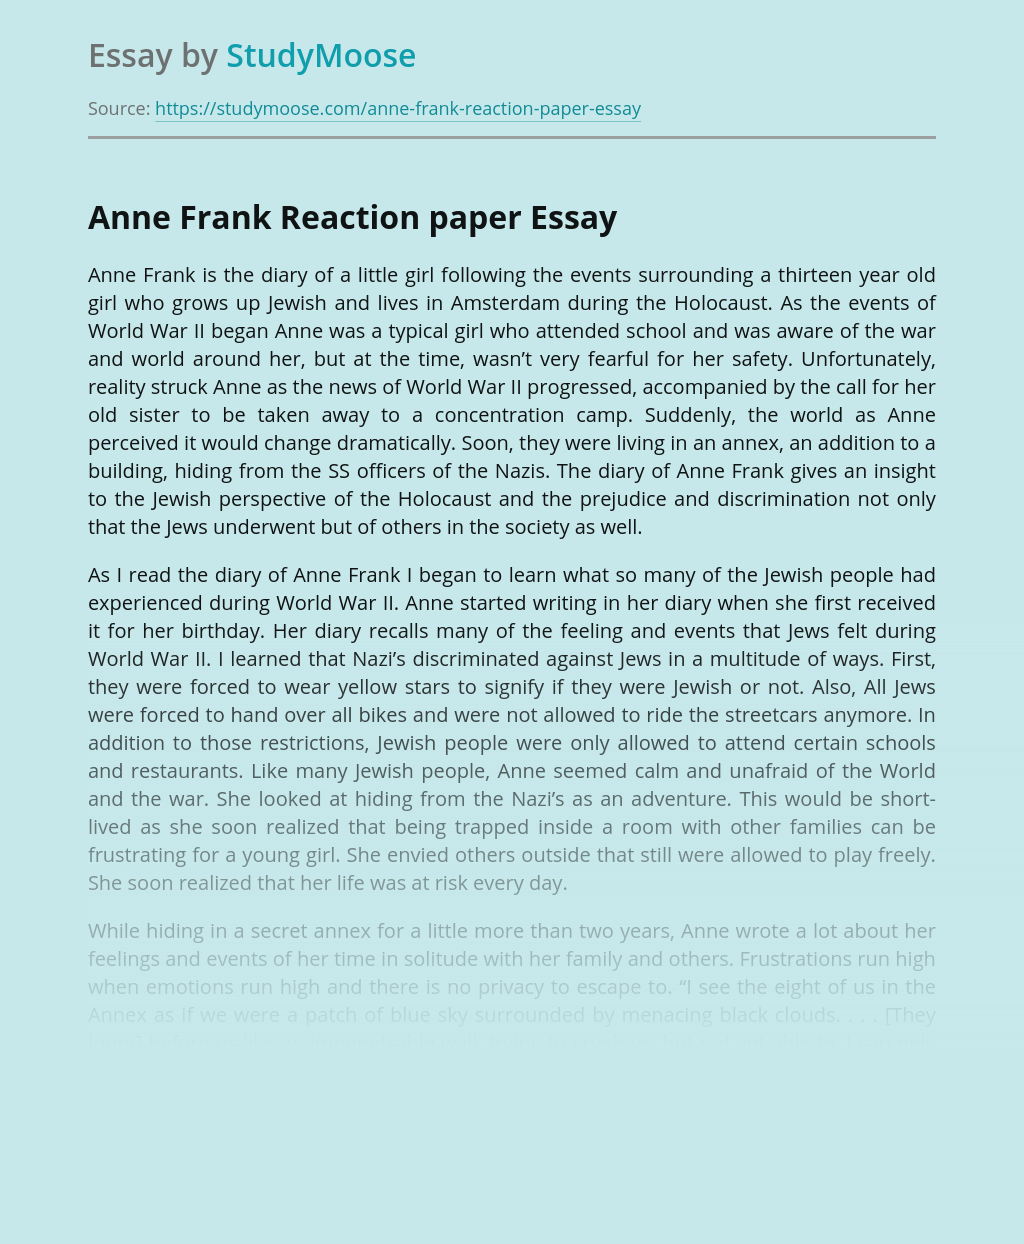 Personal Experience of Anne Frank Reaction Paper